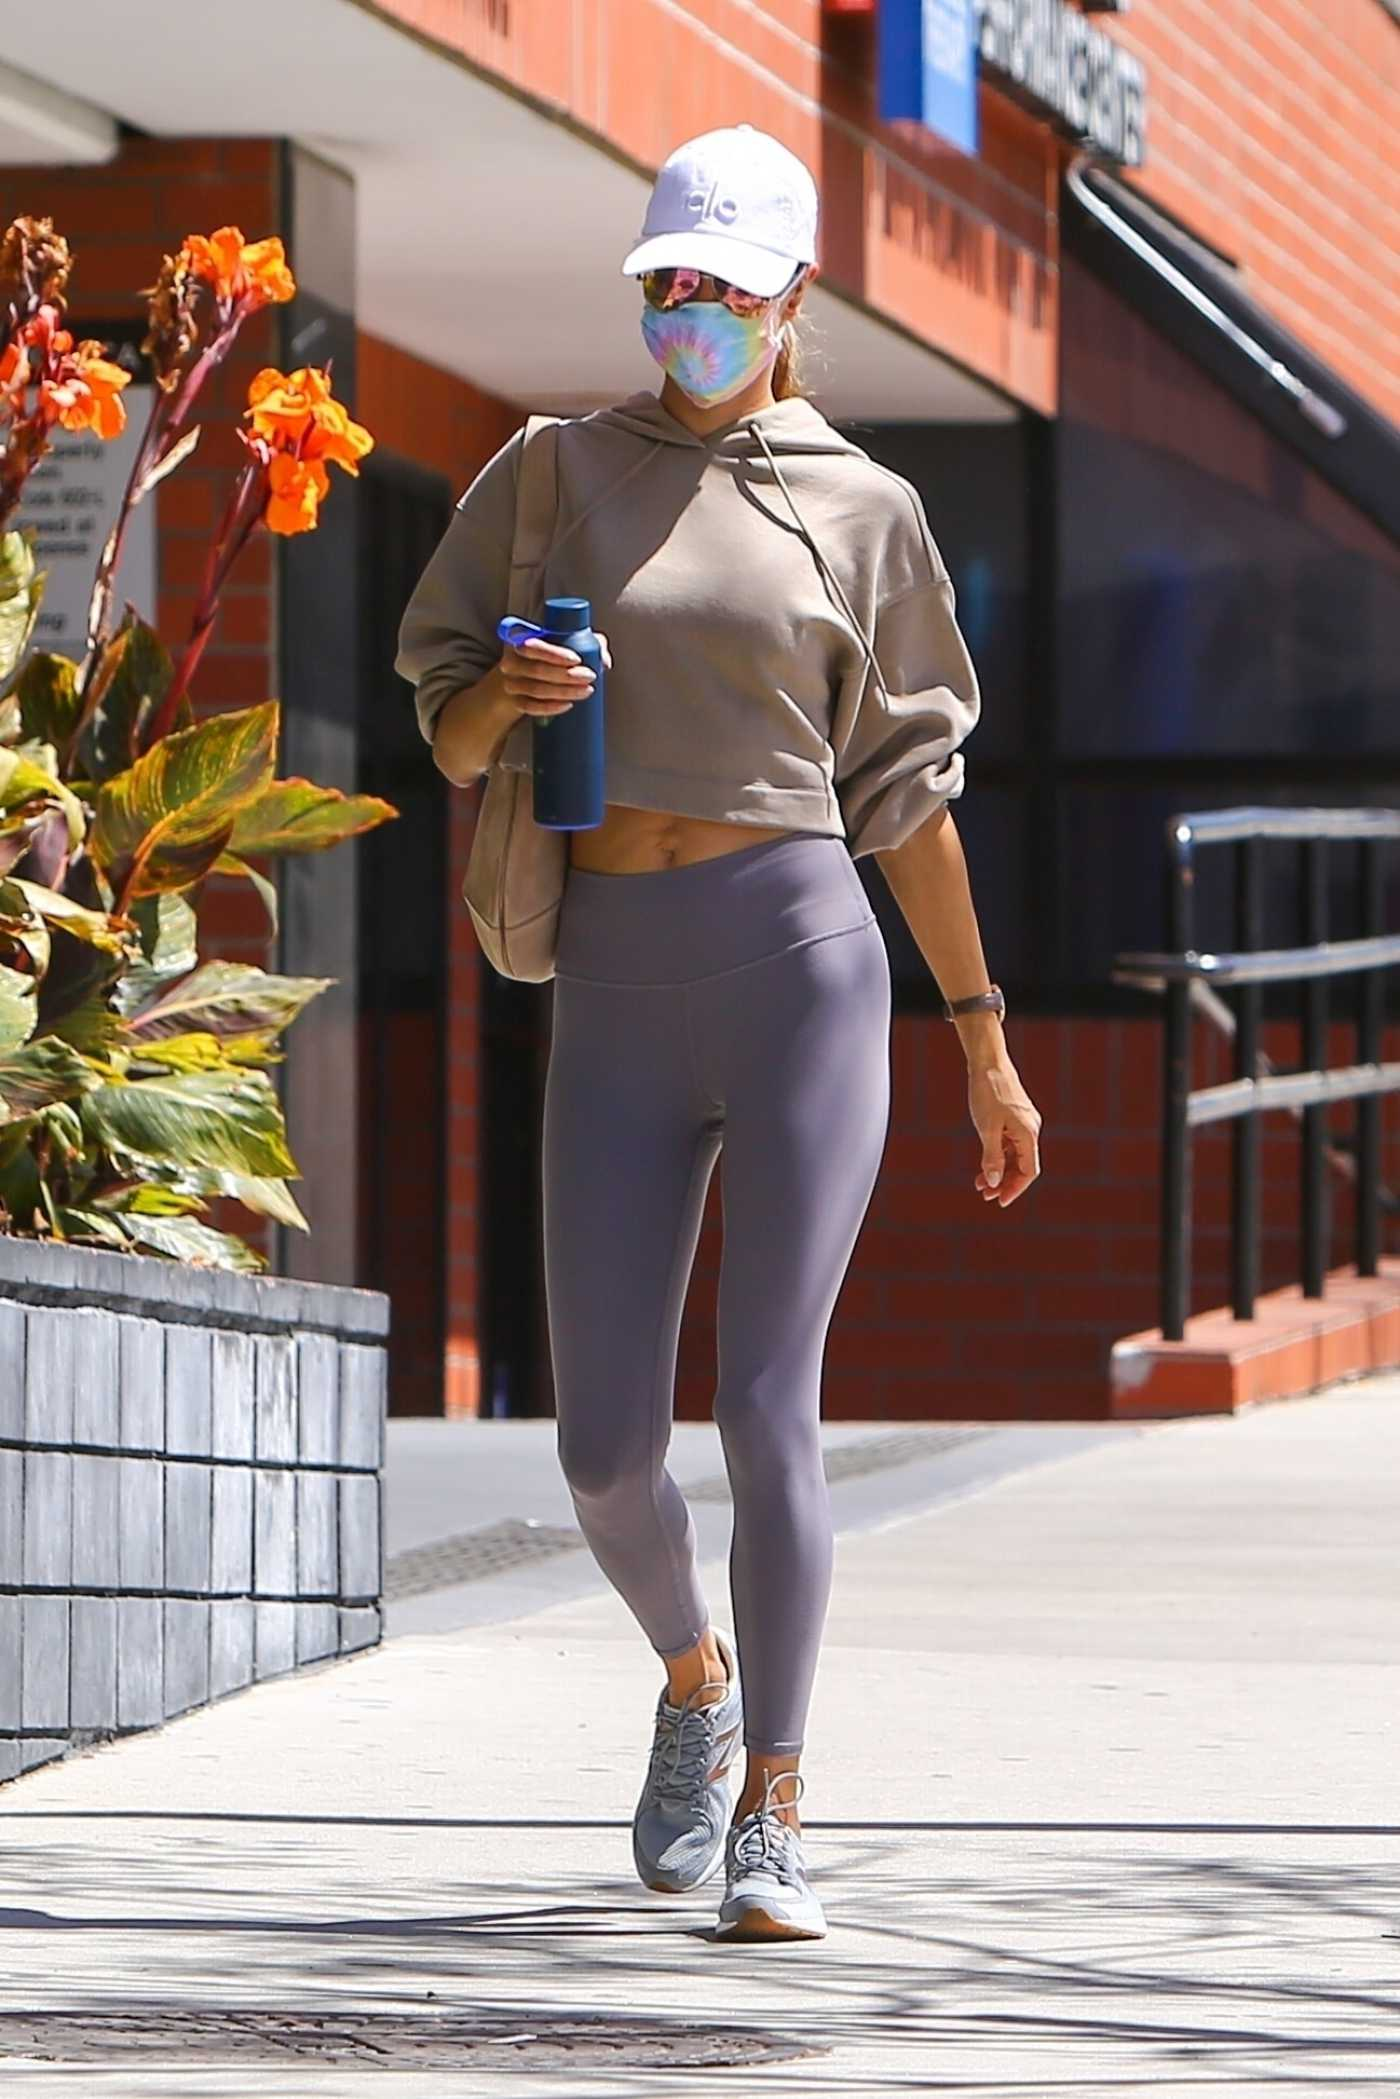 Alessandra Ambrosio in a White Cap Arrives at Her Morning Pilates Class in Los Angeles 04/28/2021